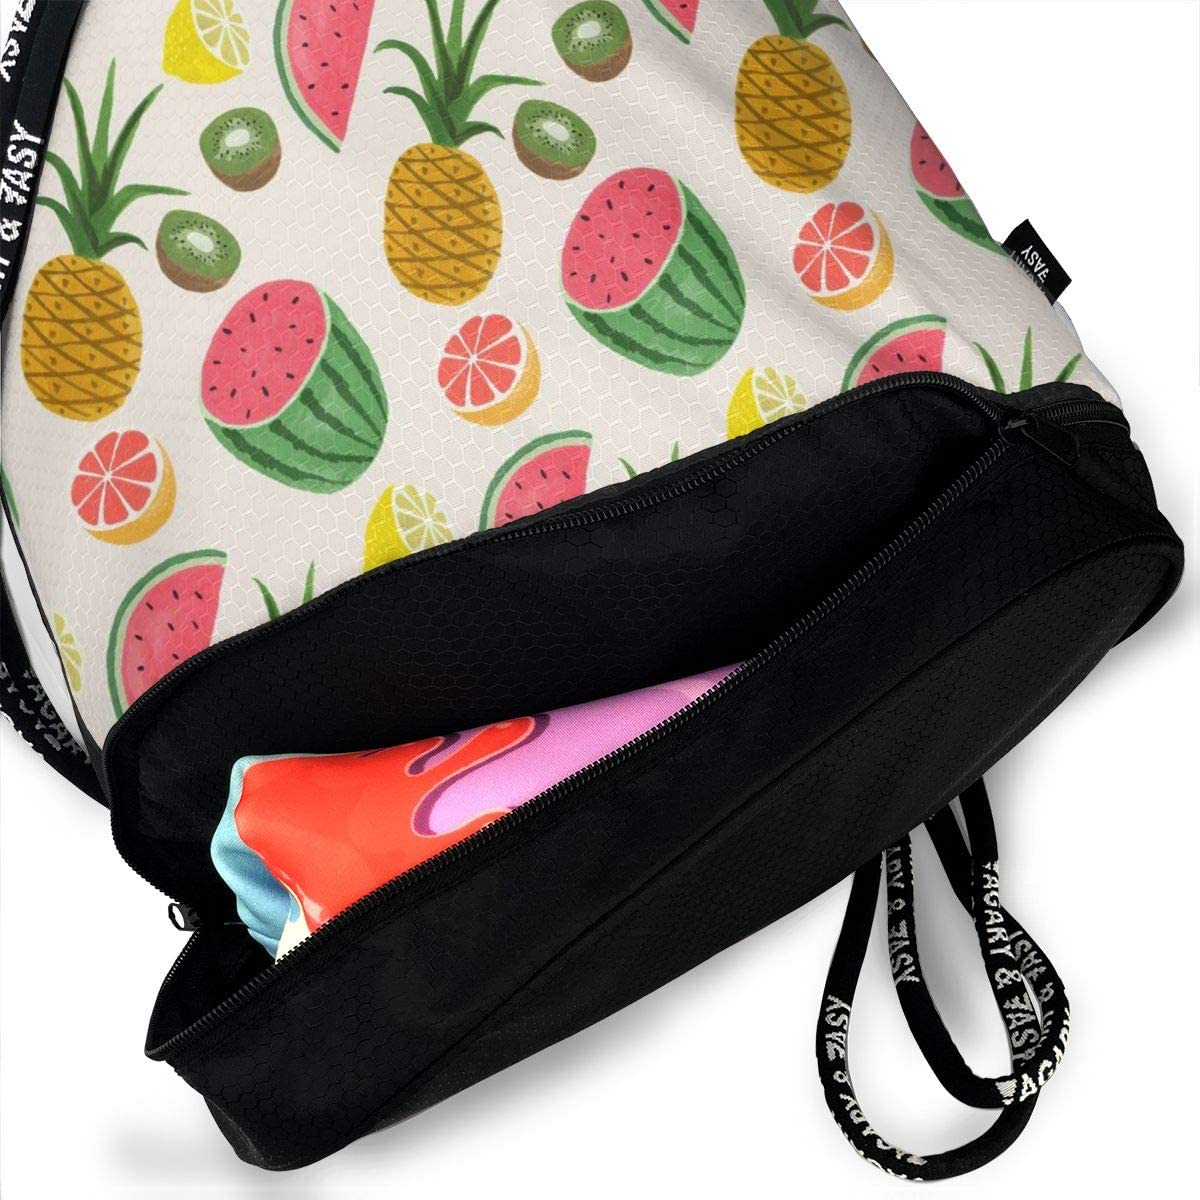 GymSack Drawstring Bag Sackpack Watermelon Pattern Sport Cinch Pack Simple Bundle Pocke Backpack For Men Women